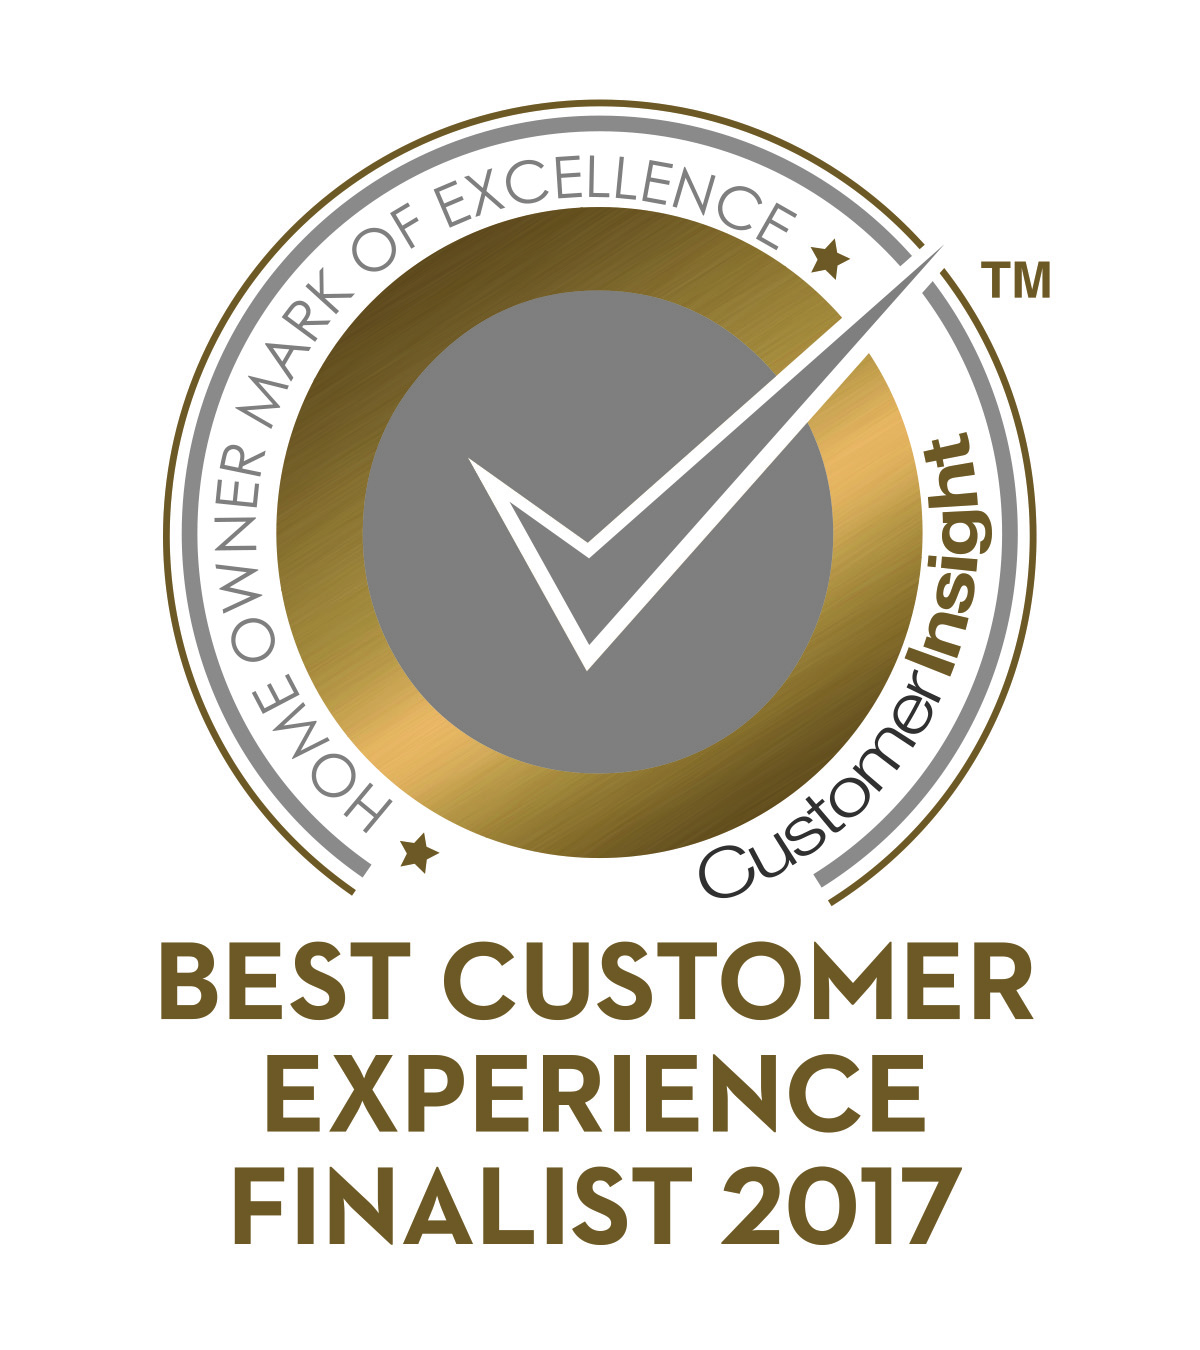 The Park at Garden Heights customer insight best customer experience 2017